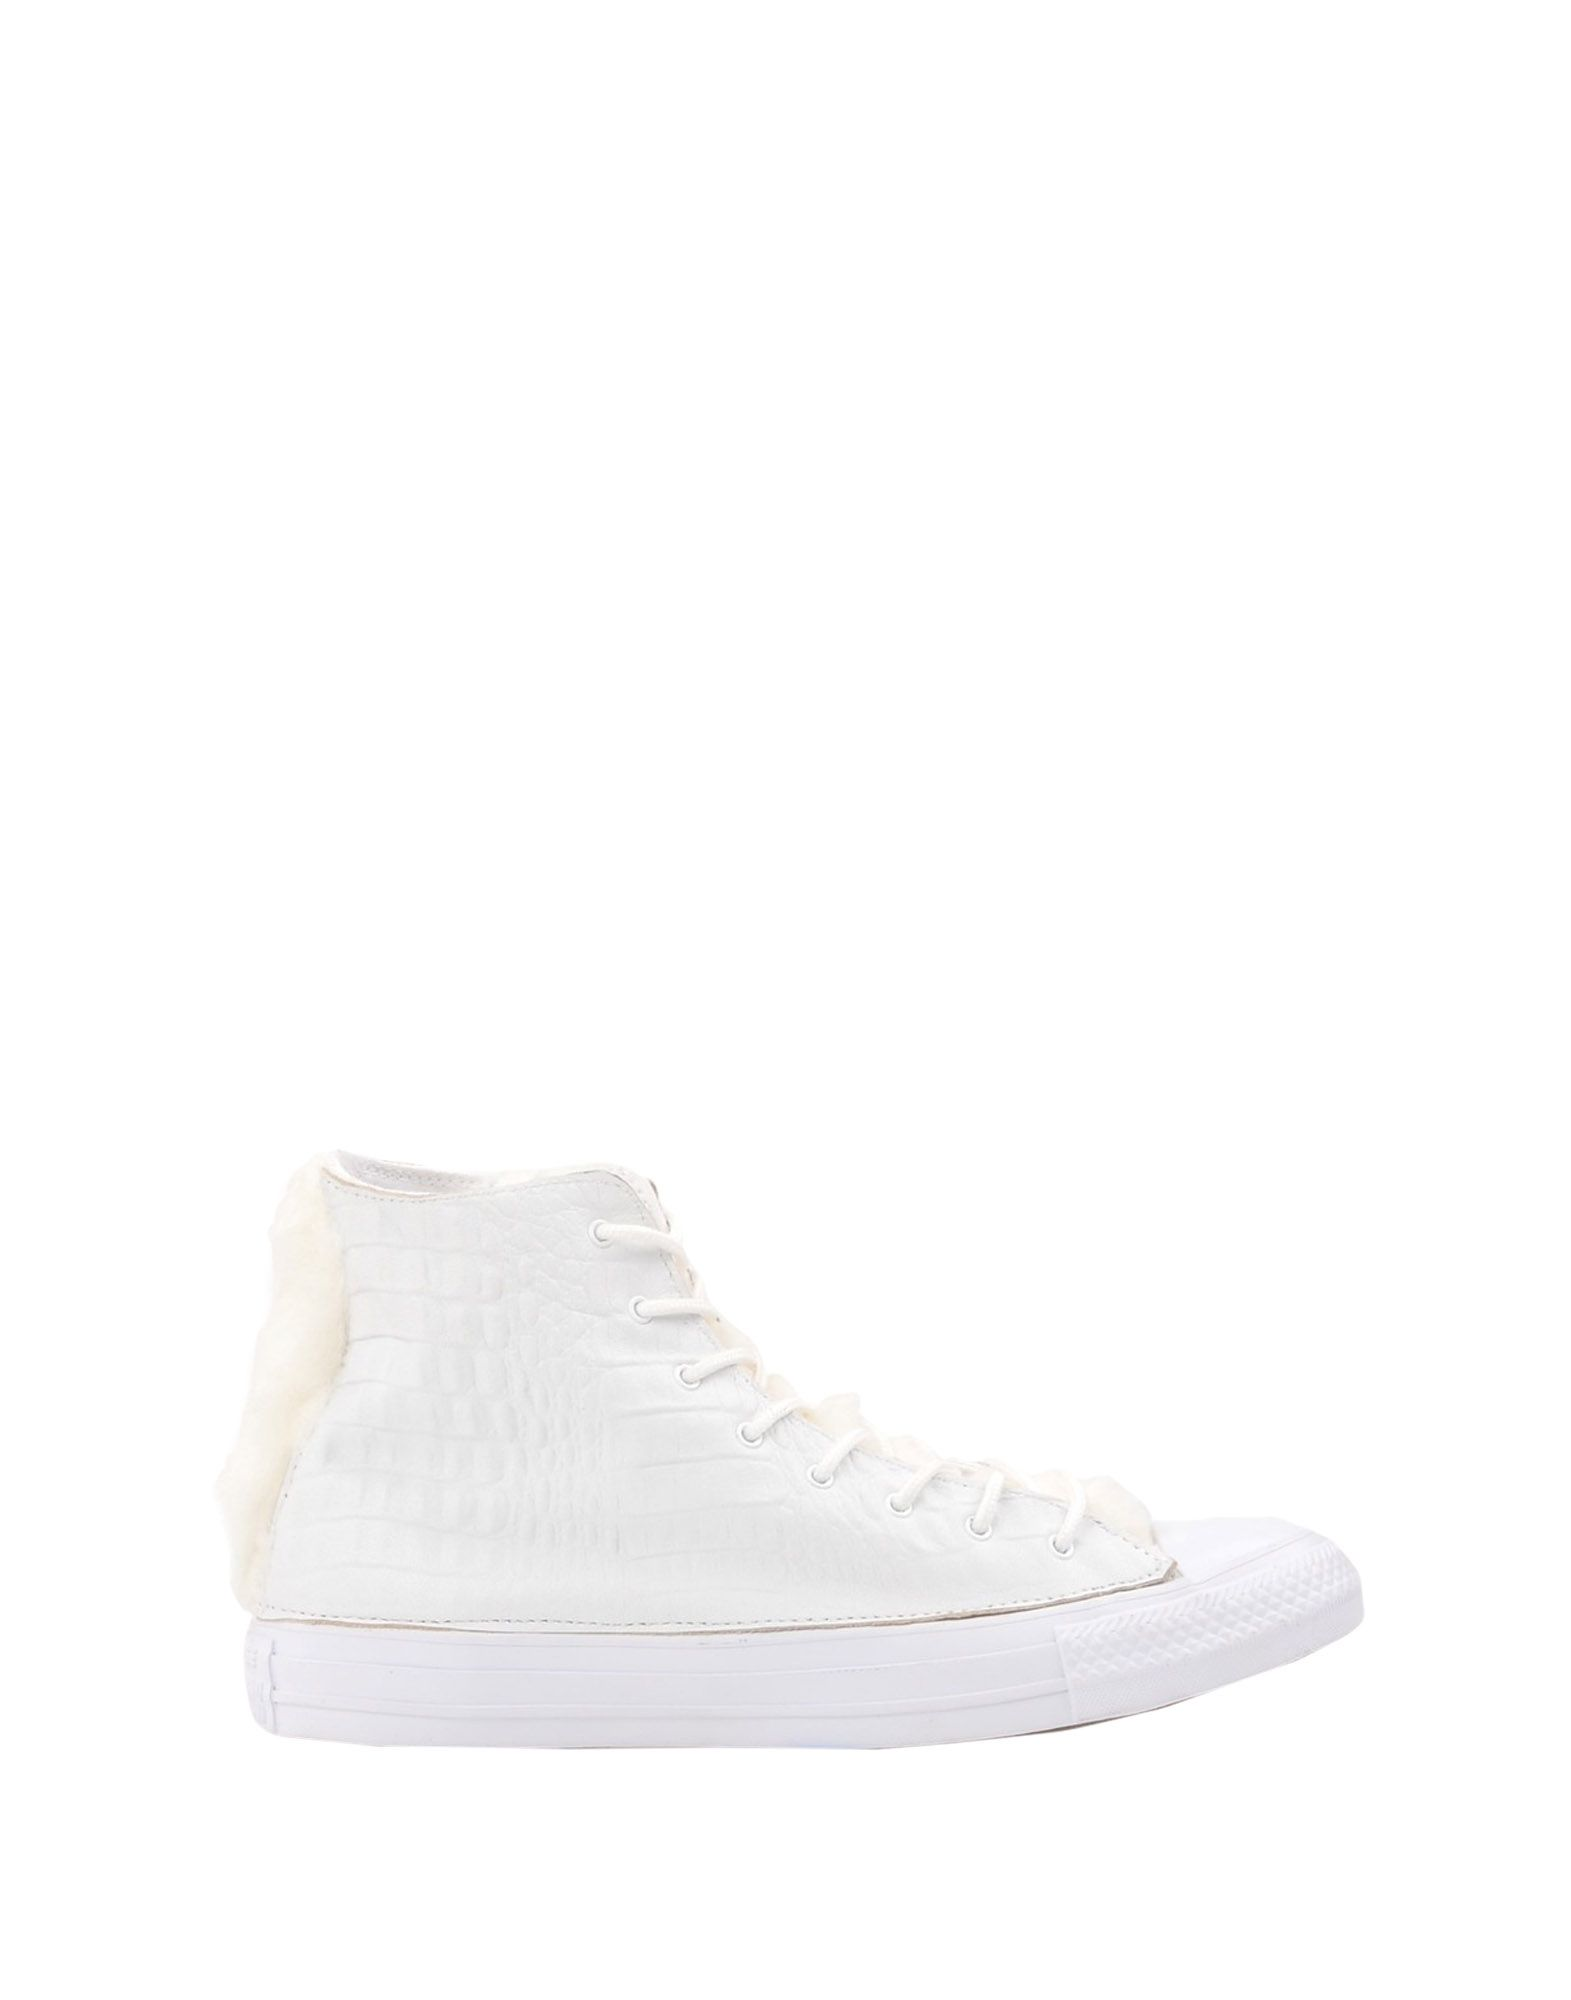 Sneakers Converse Limited Edition Ctas Hi Canvas/Leather Ltd - Femme - Sneakers Converse Limited Edition sur